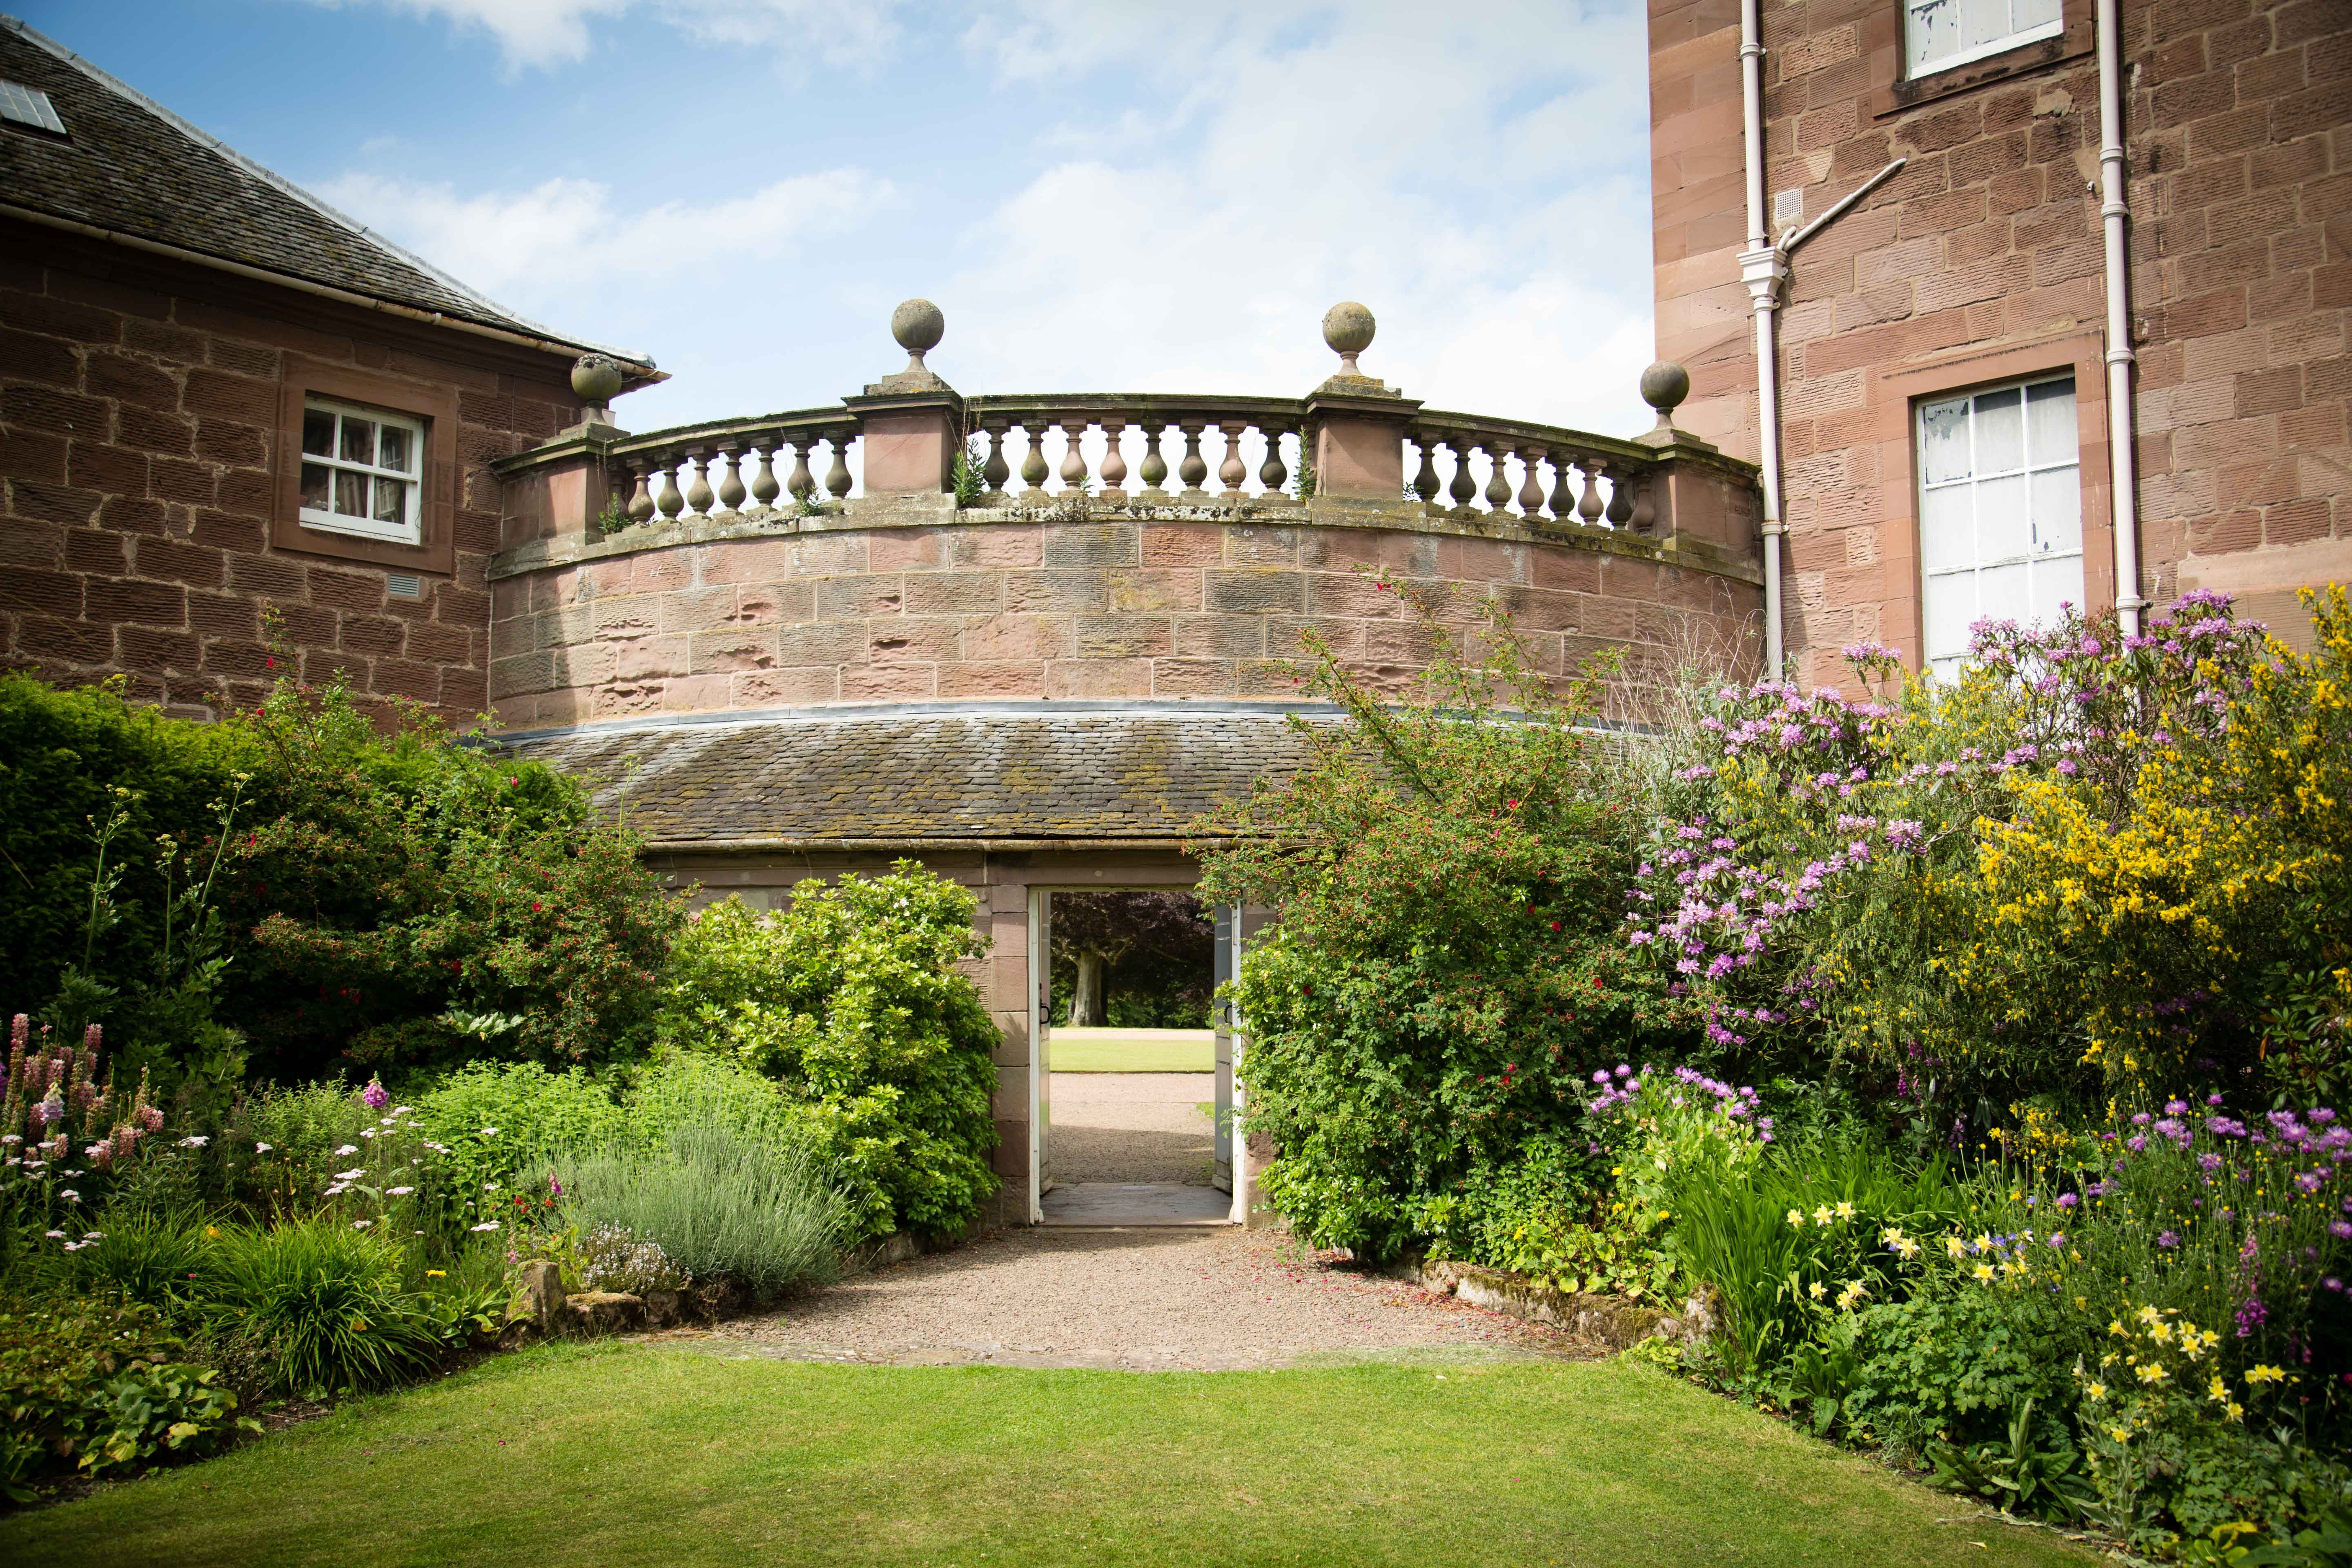 Paxton House Grounds & Gardens